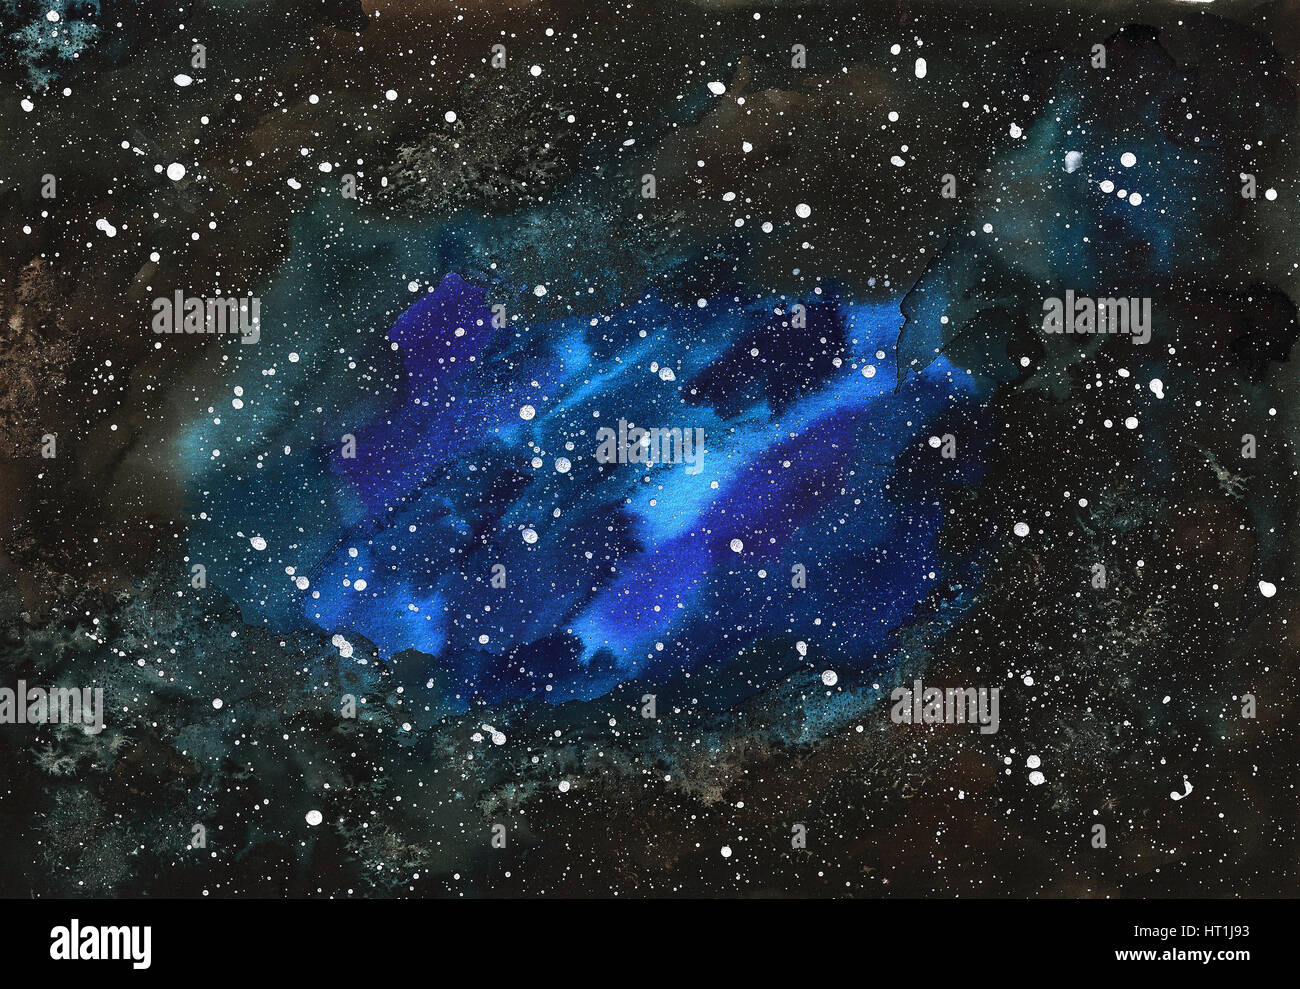 Watercolor Galaxy High Resolution Stock Photography And Images Alamy